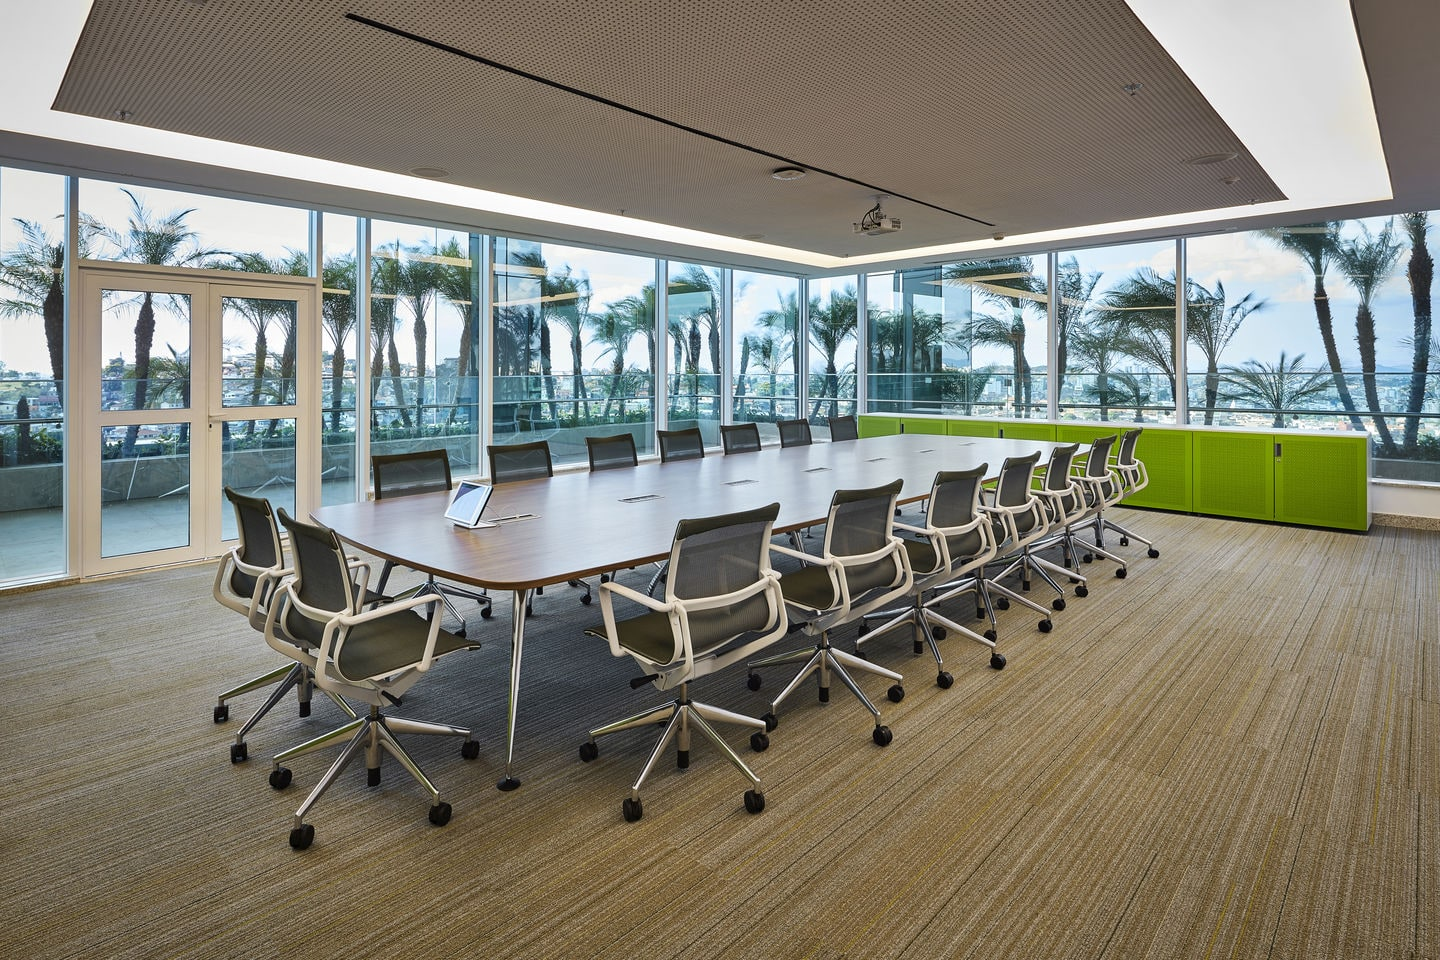 Furniture for the conference room and the meeting room